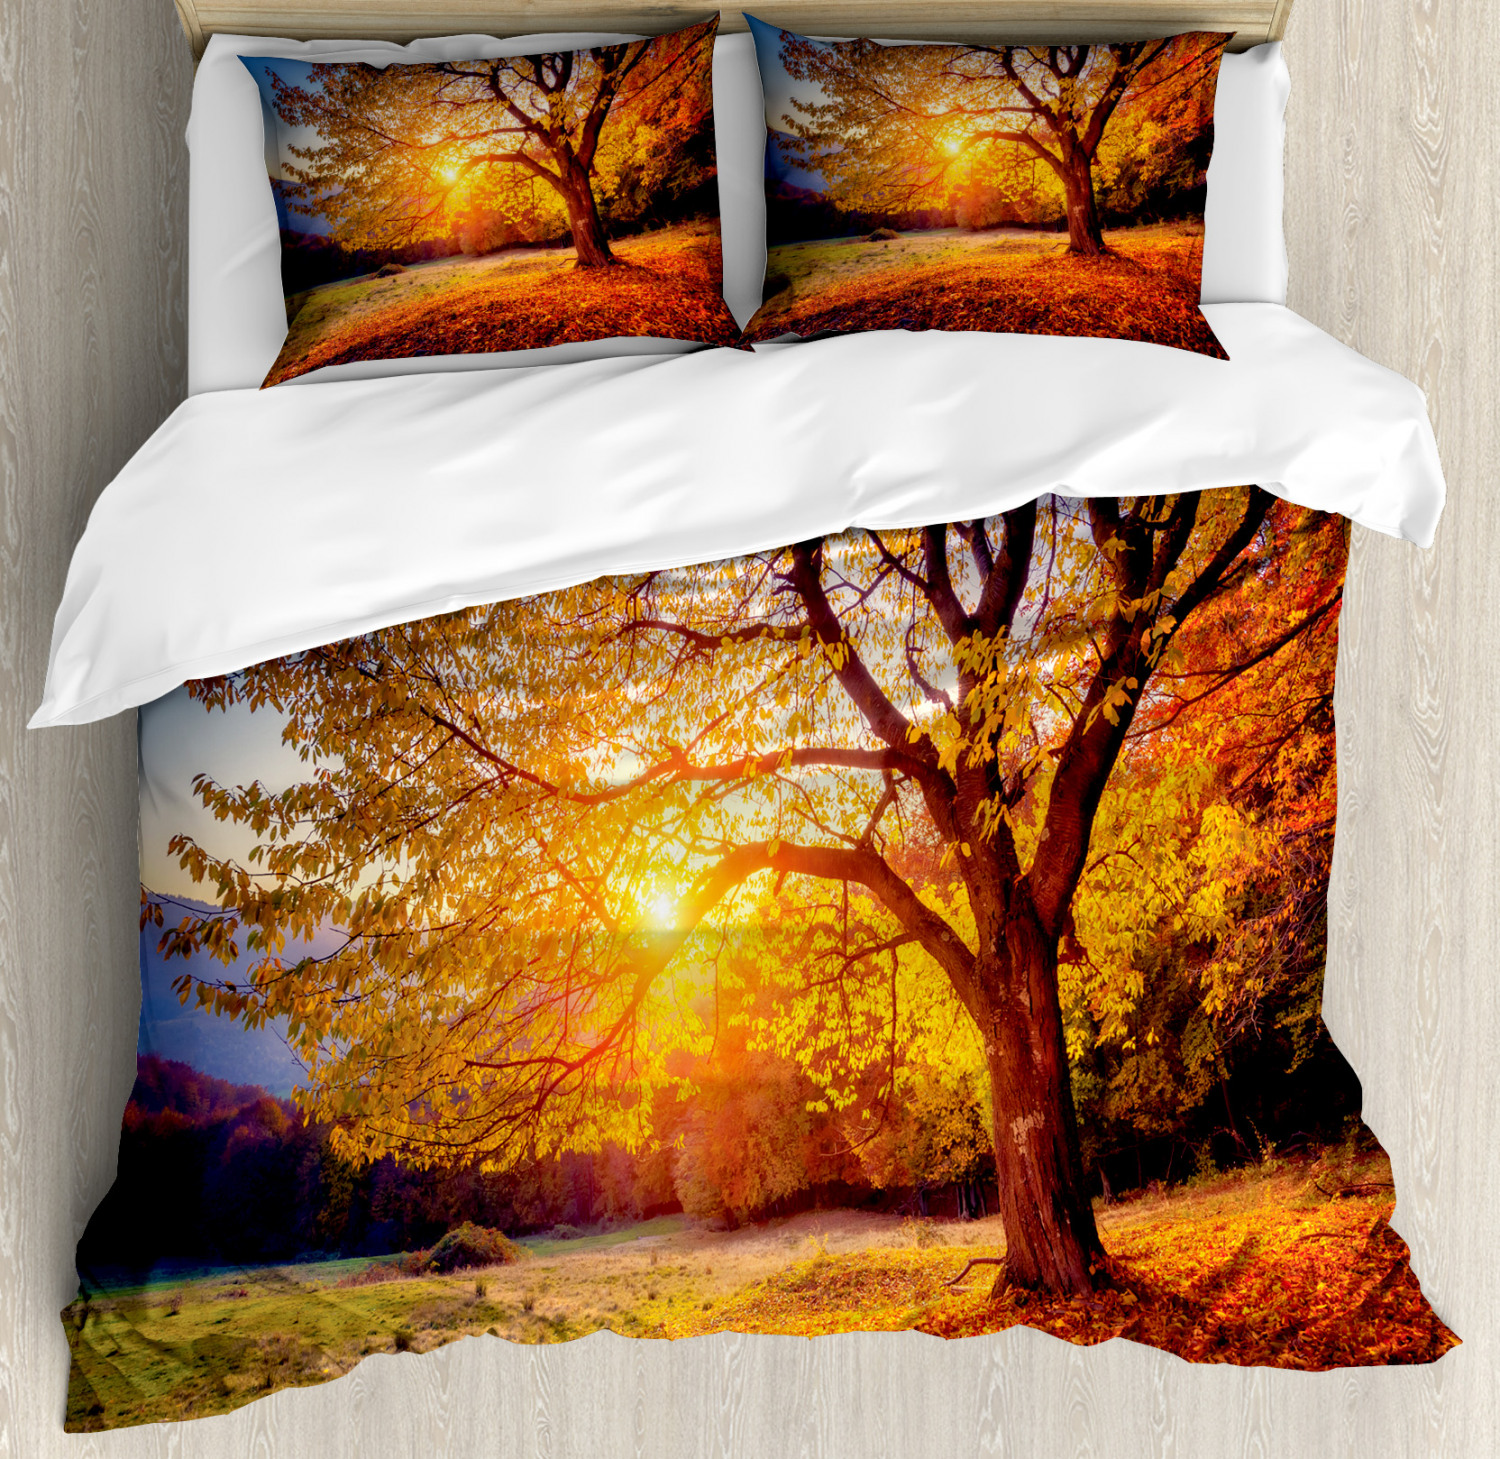 Brown Duvet Cover Set with Pillow Shams Autumn Fall Tree Lea